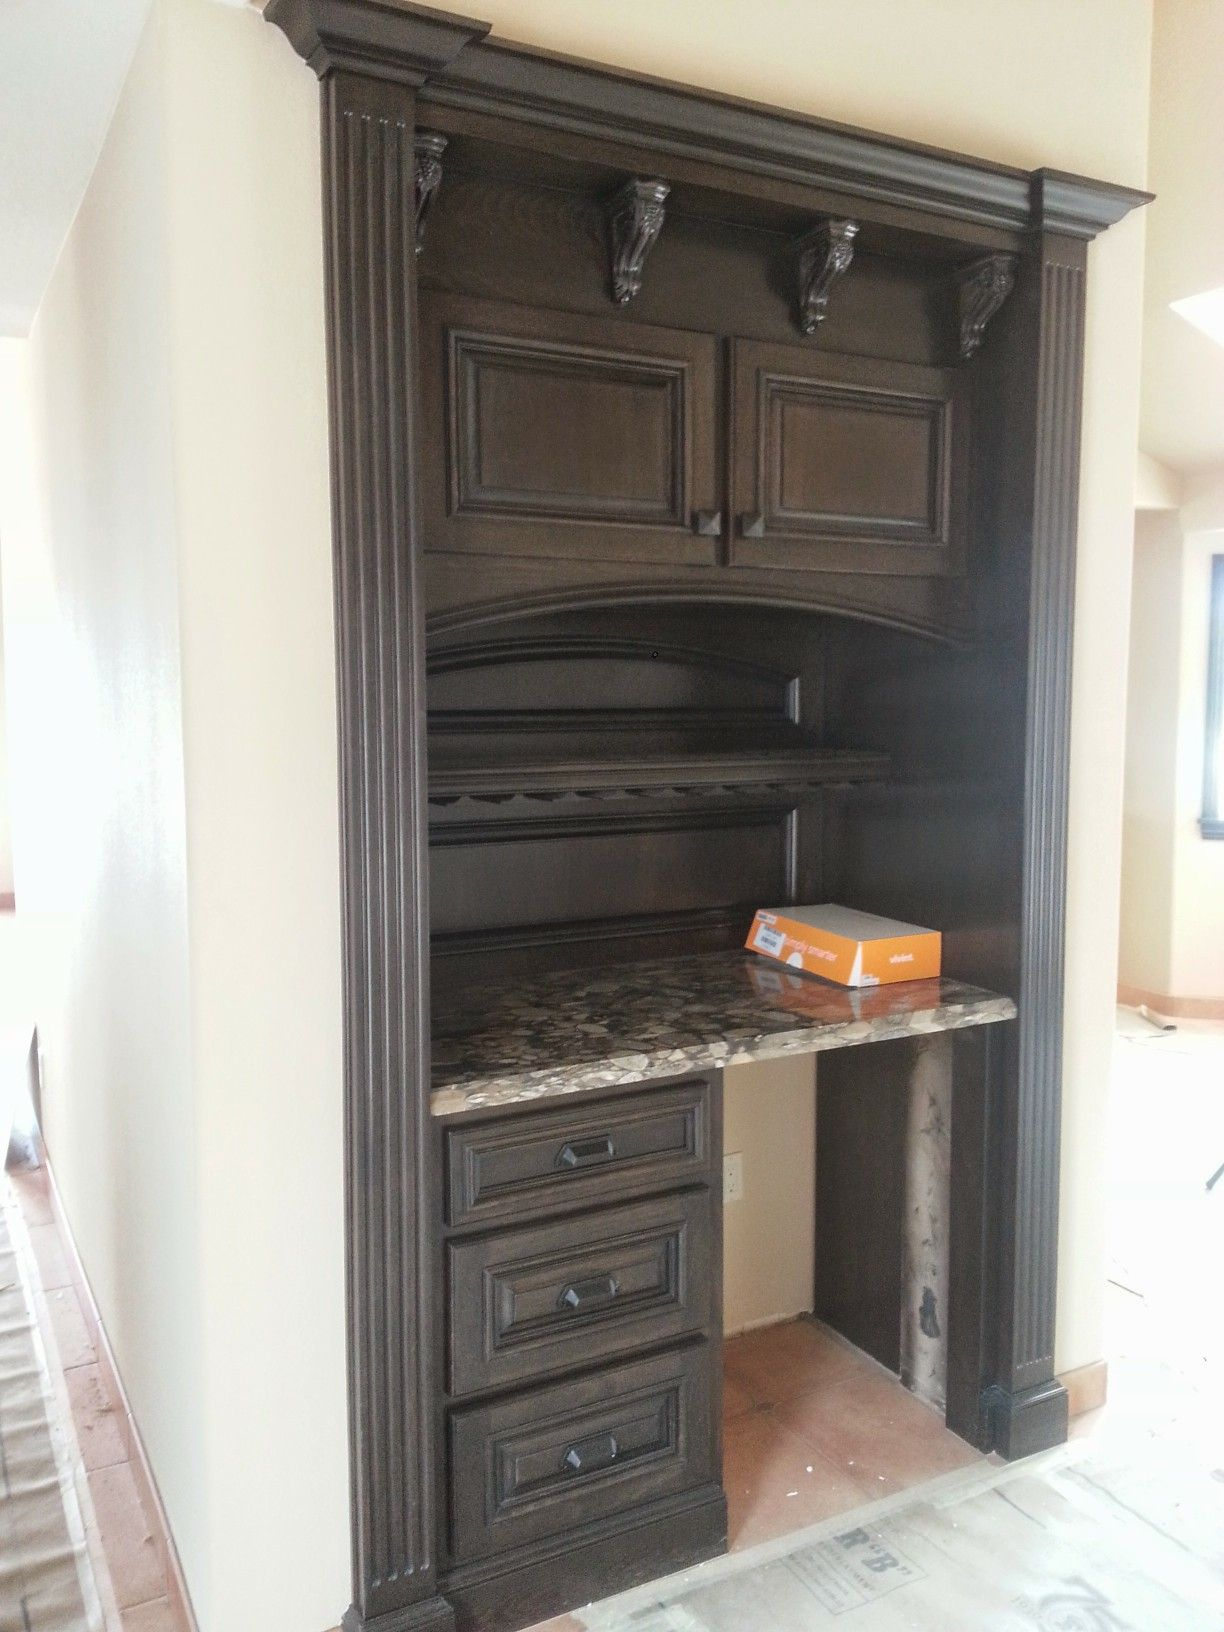 Pin by Toby Williams on finish carpentry   Home decor ...